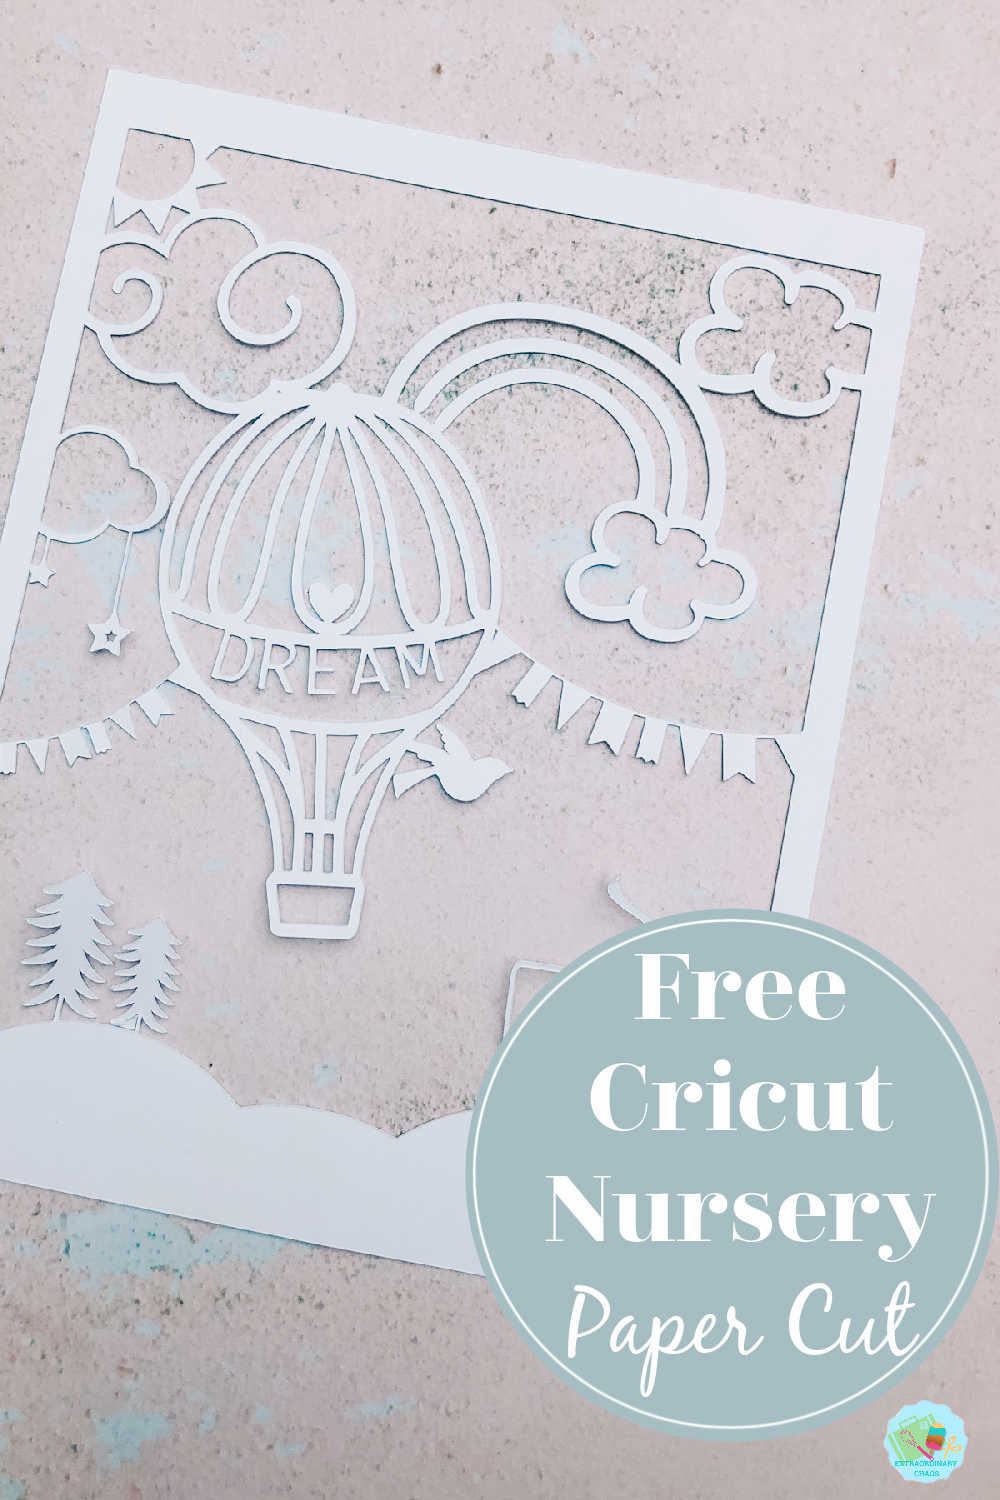 How To Make A Cricut Nursery Balloon Paper Cut And Free Download